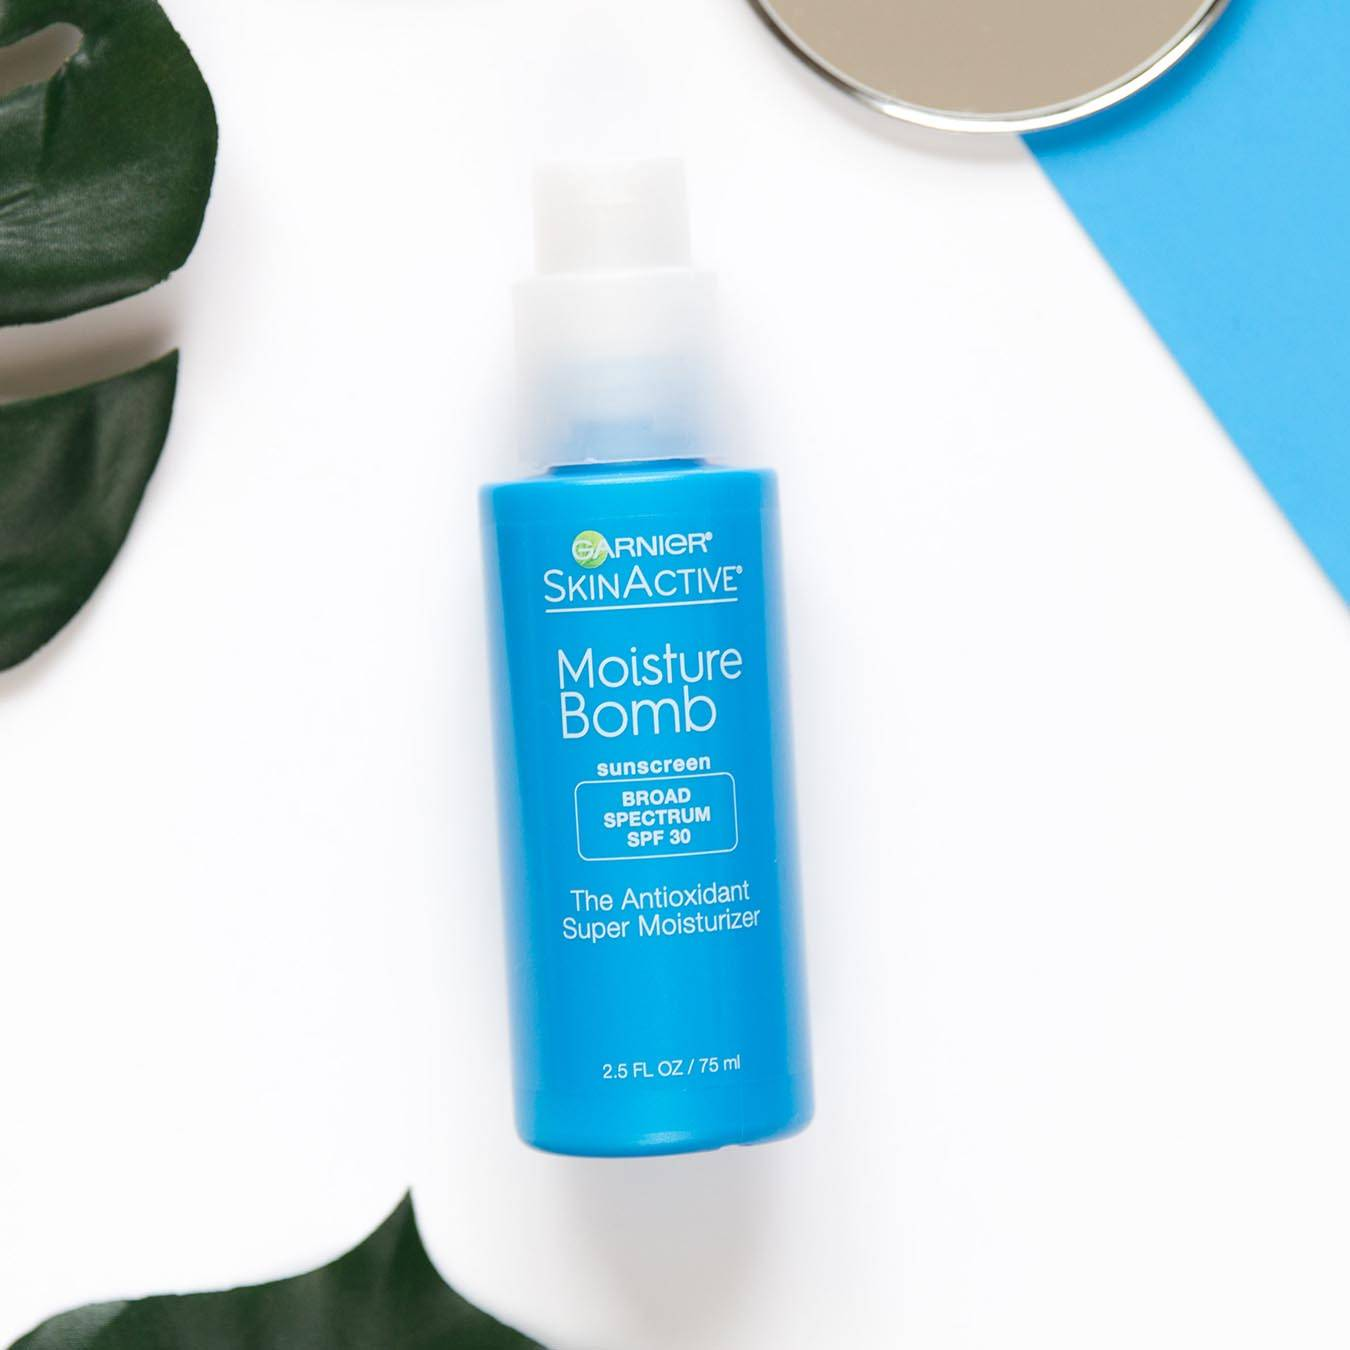 Garnier SkinActive Moisture Bomb Sunscreen Broad Spectrum SPF 30 The Antioxidant Super Moisturizer on a white background next to palm fronds and a mirror partially sitting on a blue piece of paper.